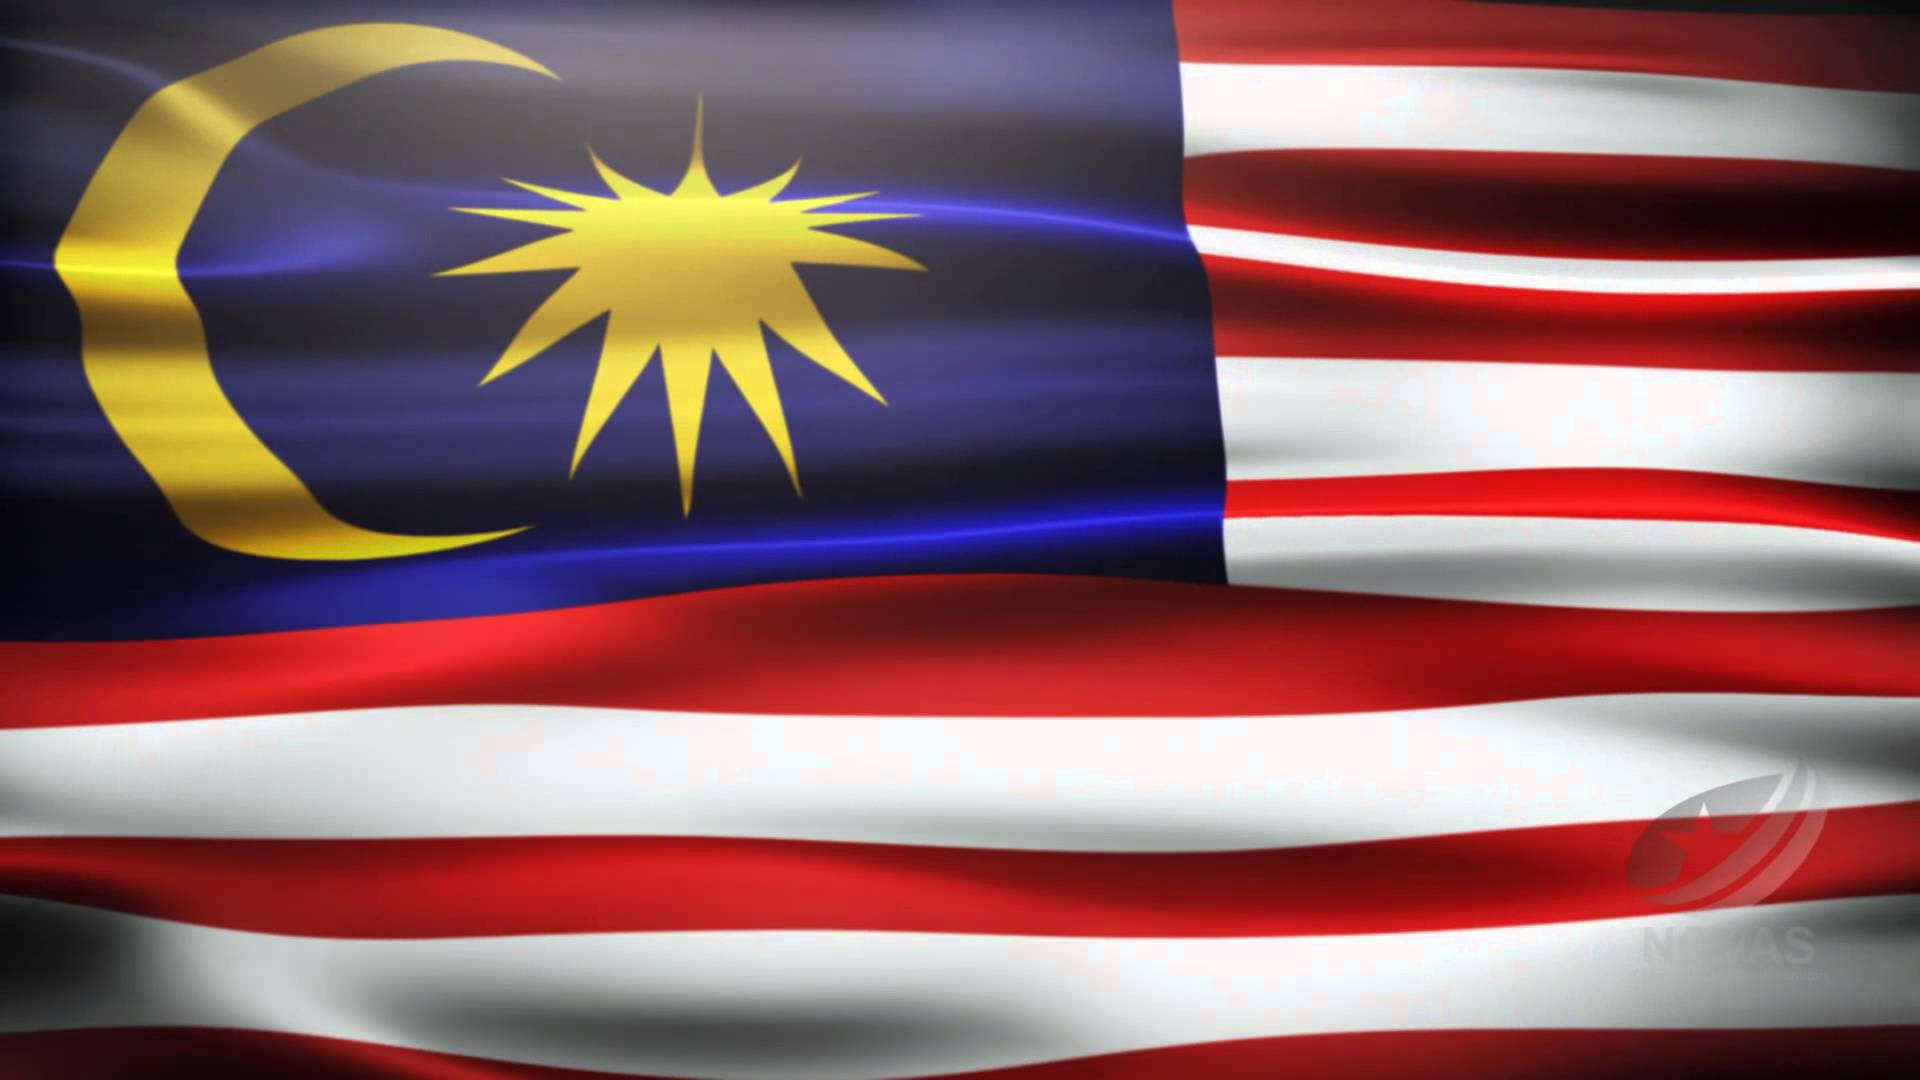 Malaysia Flag Wallpaper | (33++ Wallpapers)